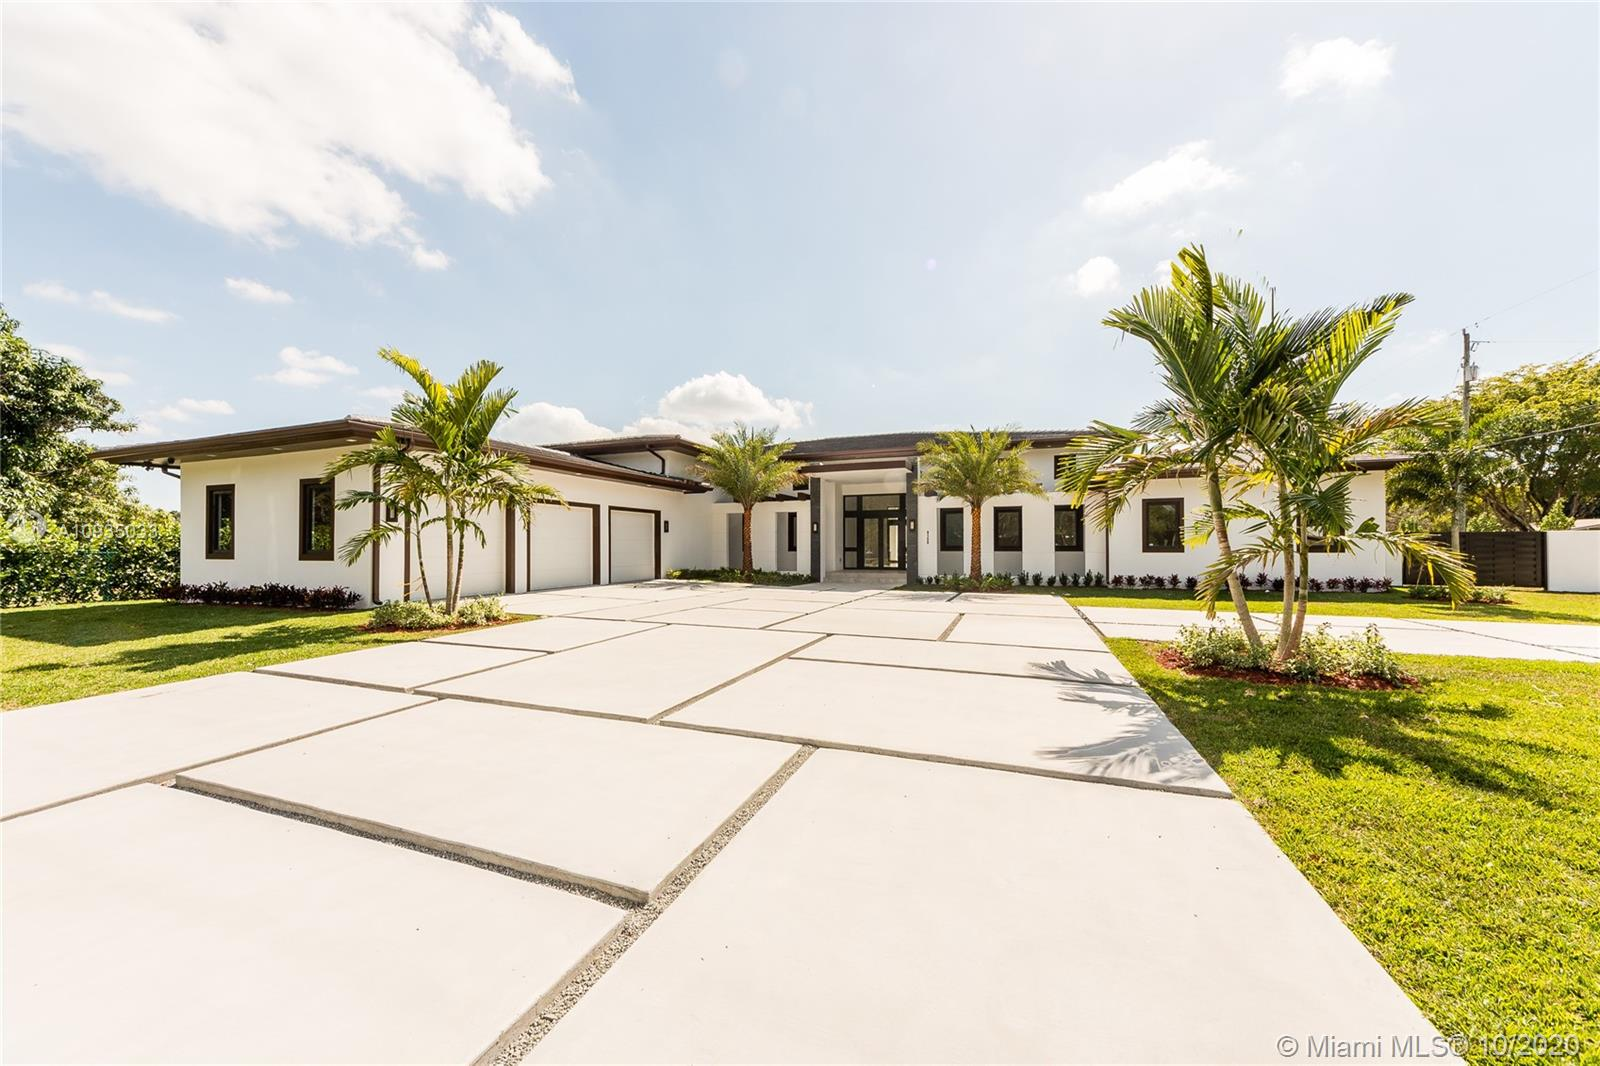 Details for 9150 124th St, Miami, FL 33176